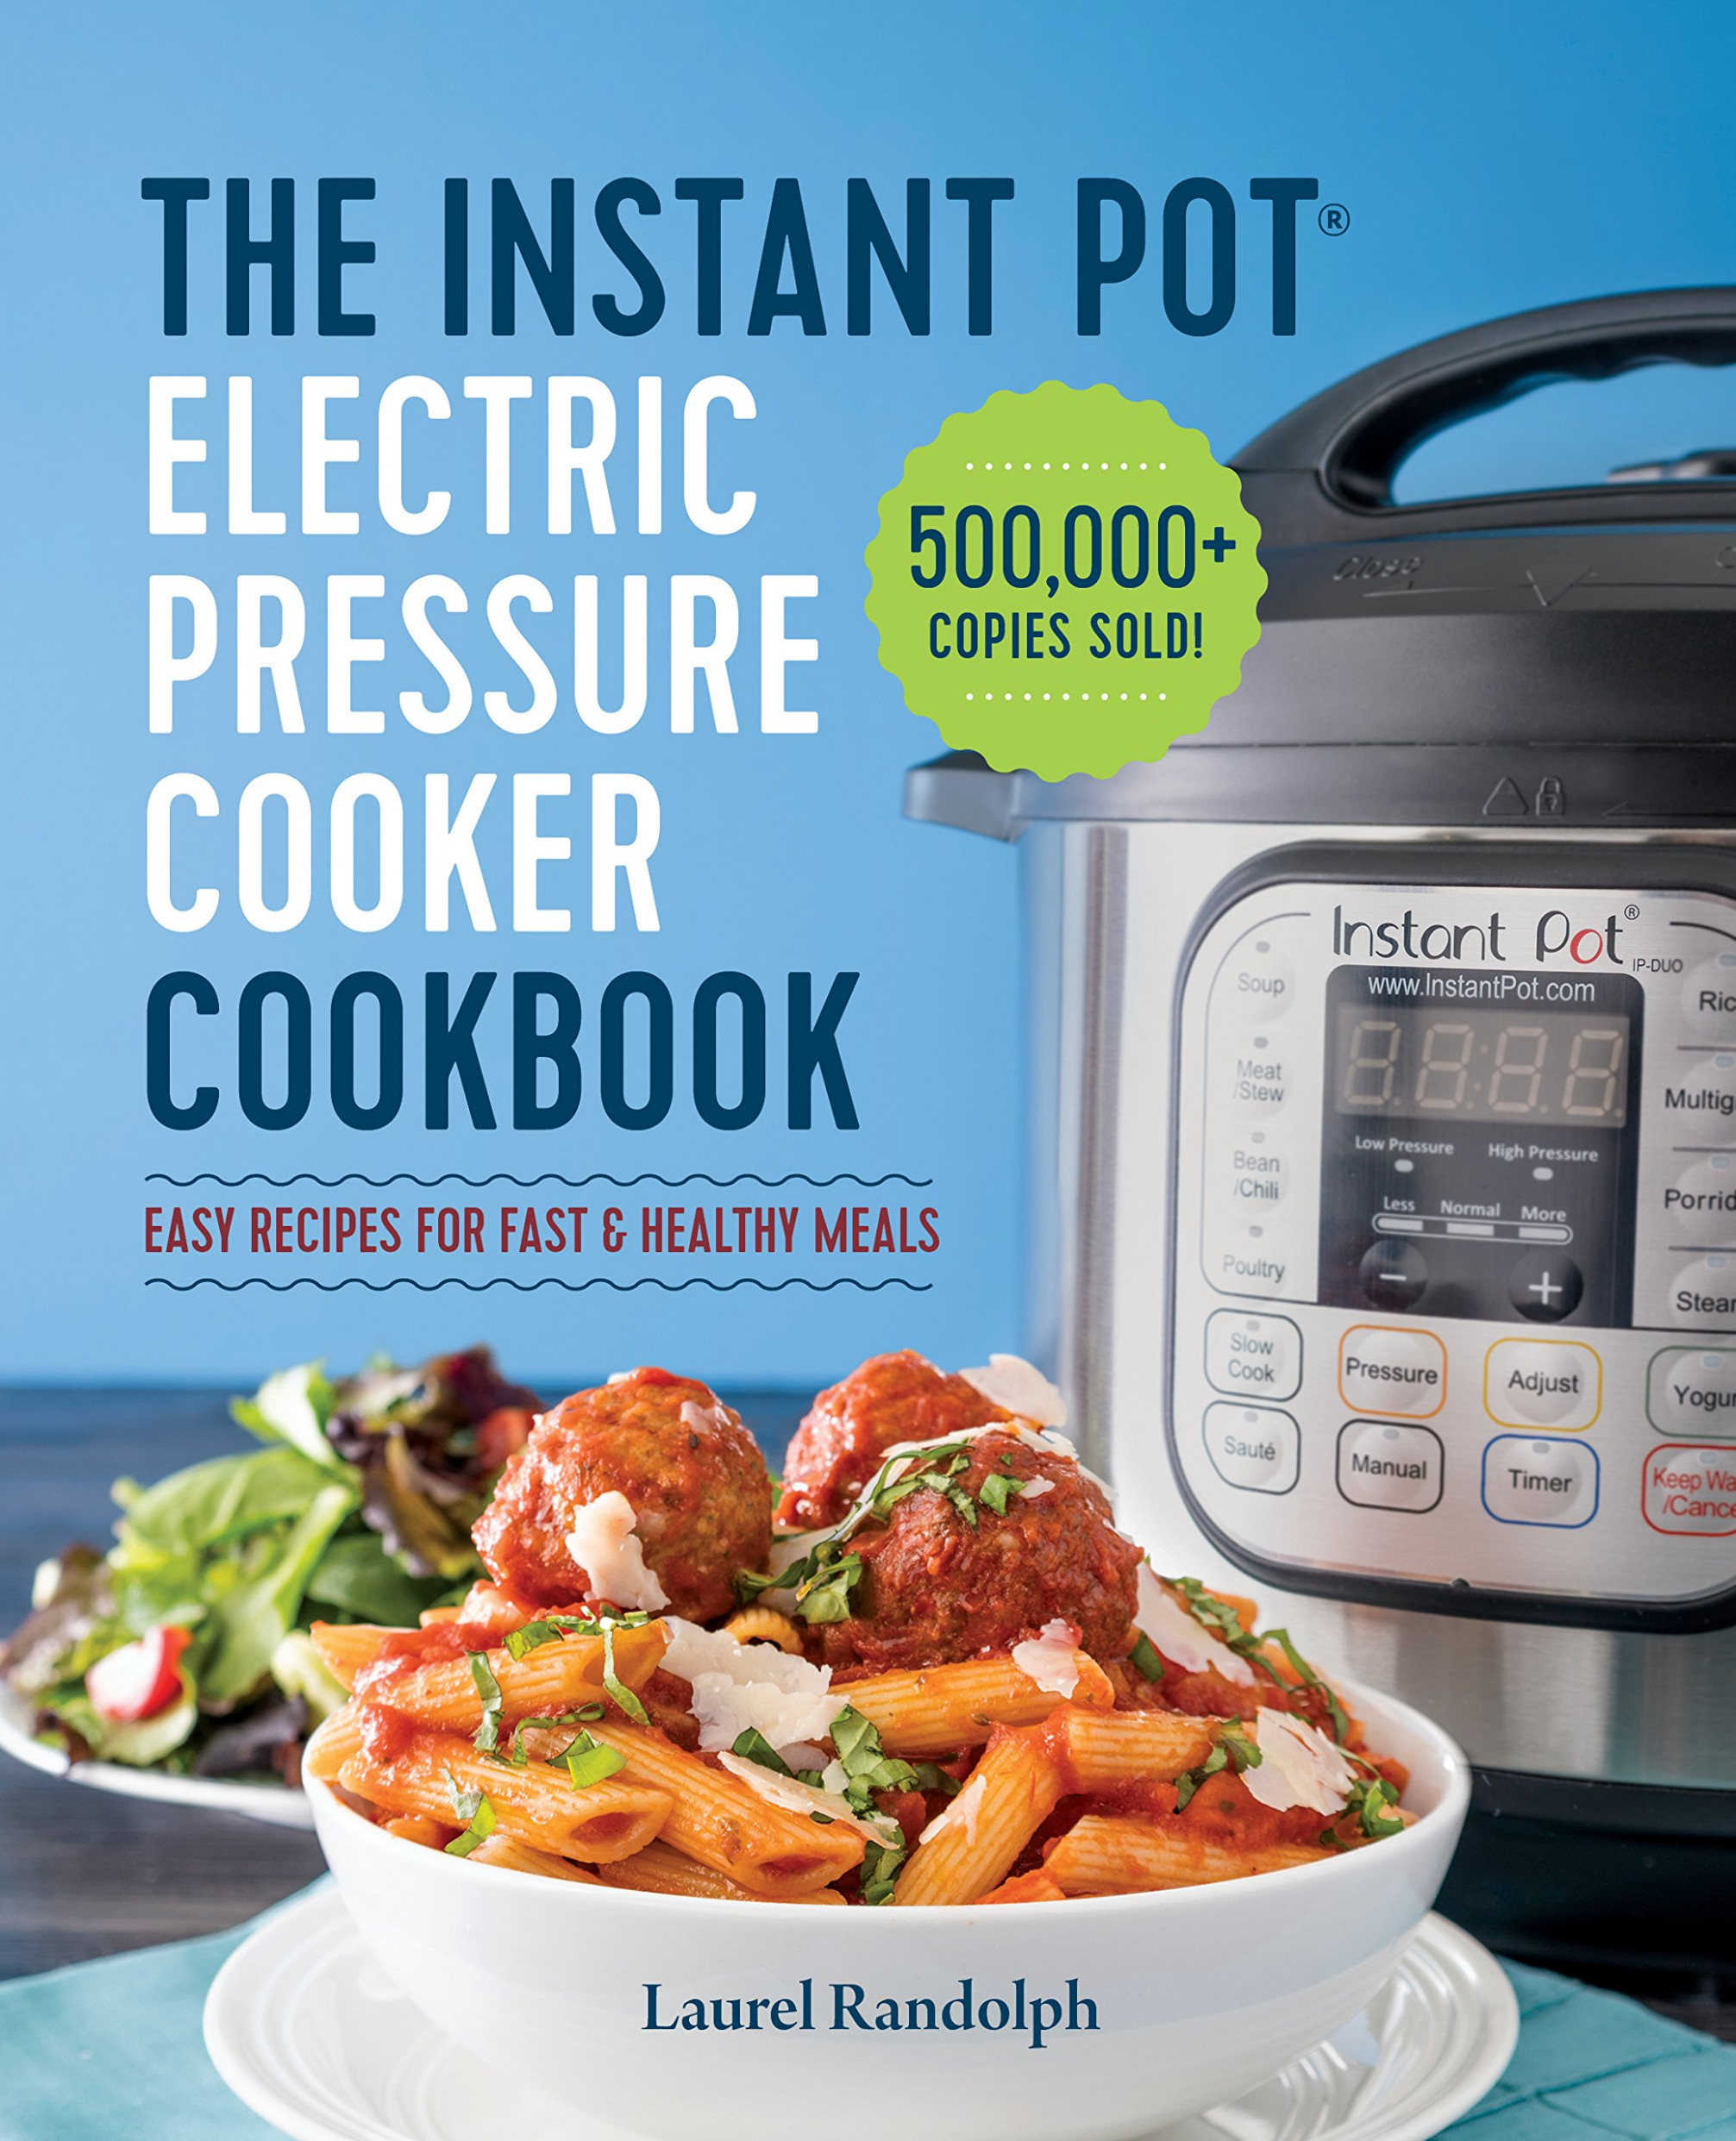 The Instant Pot Electric Pressure Cooker Cookbook: Amazon.co ...